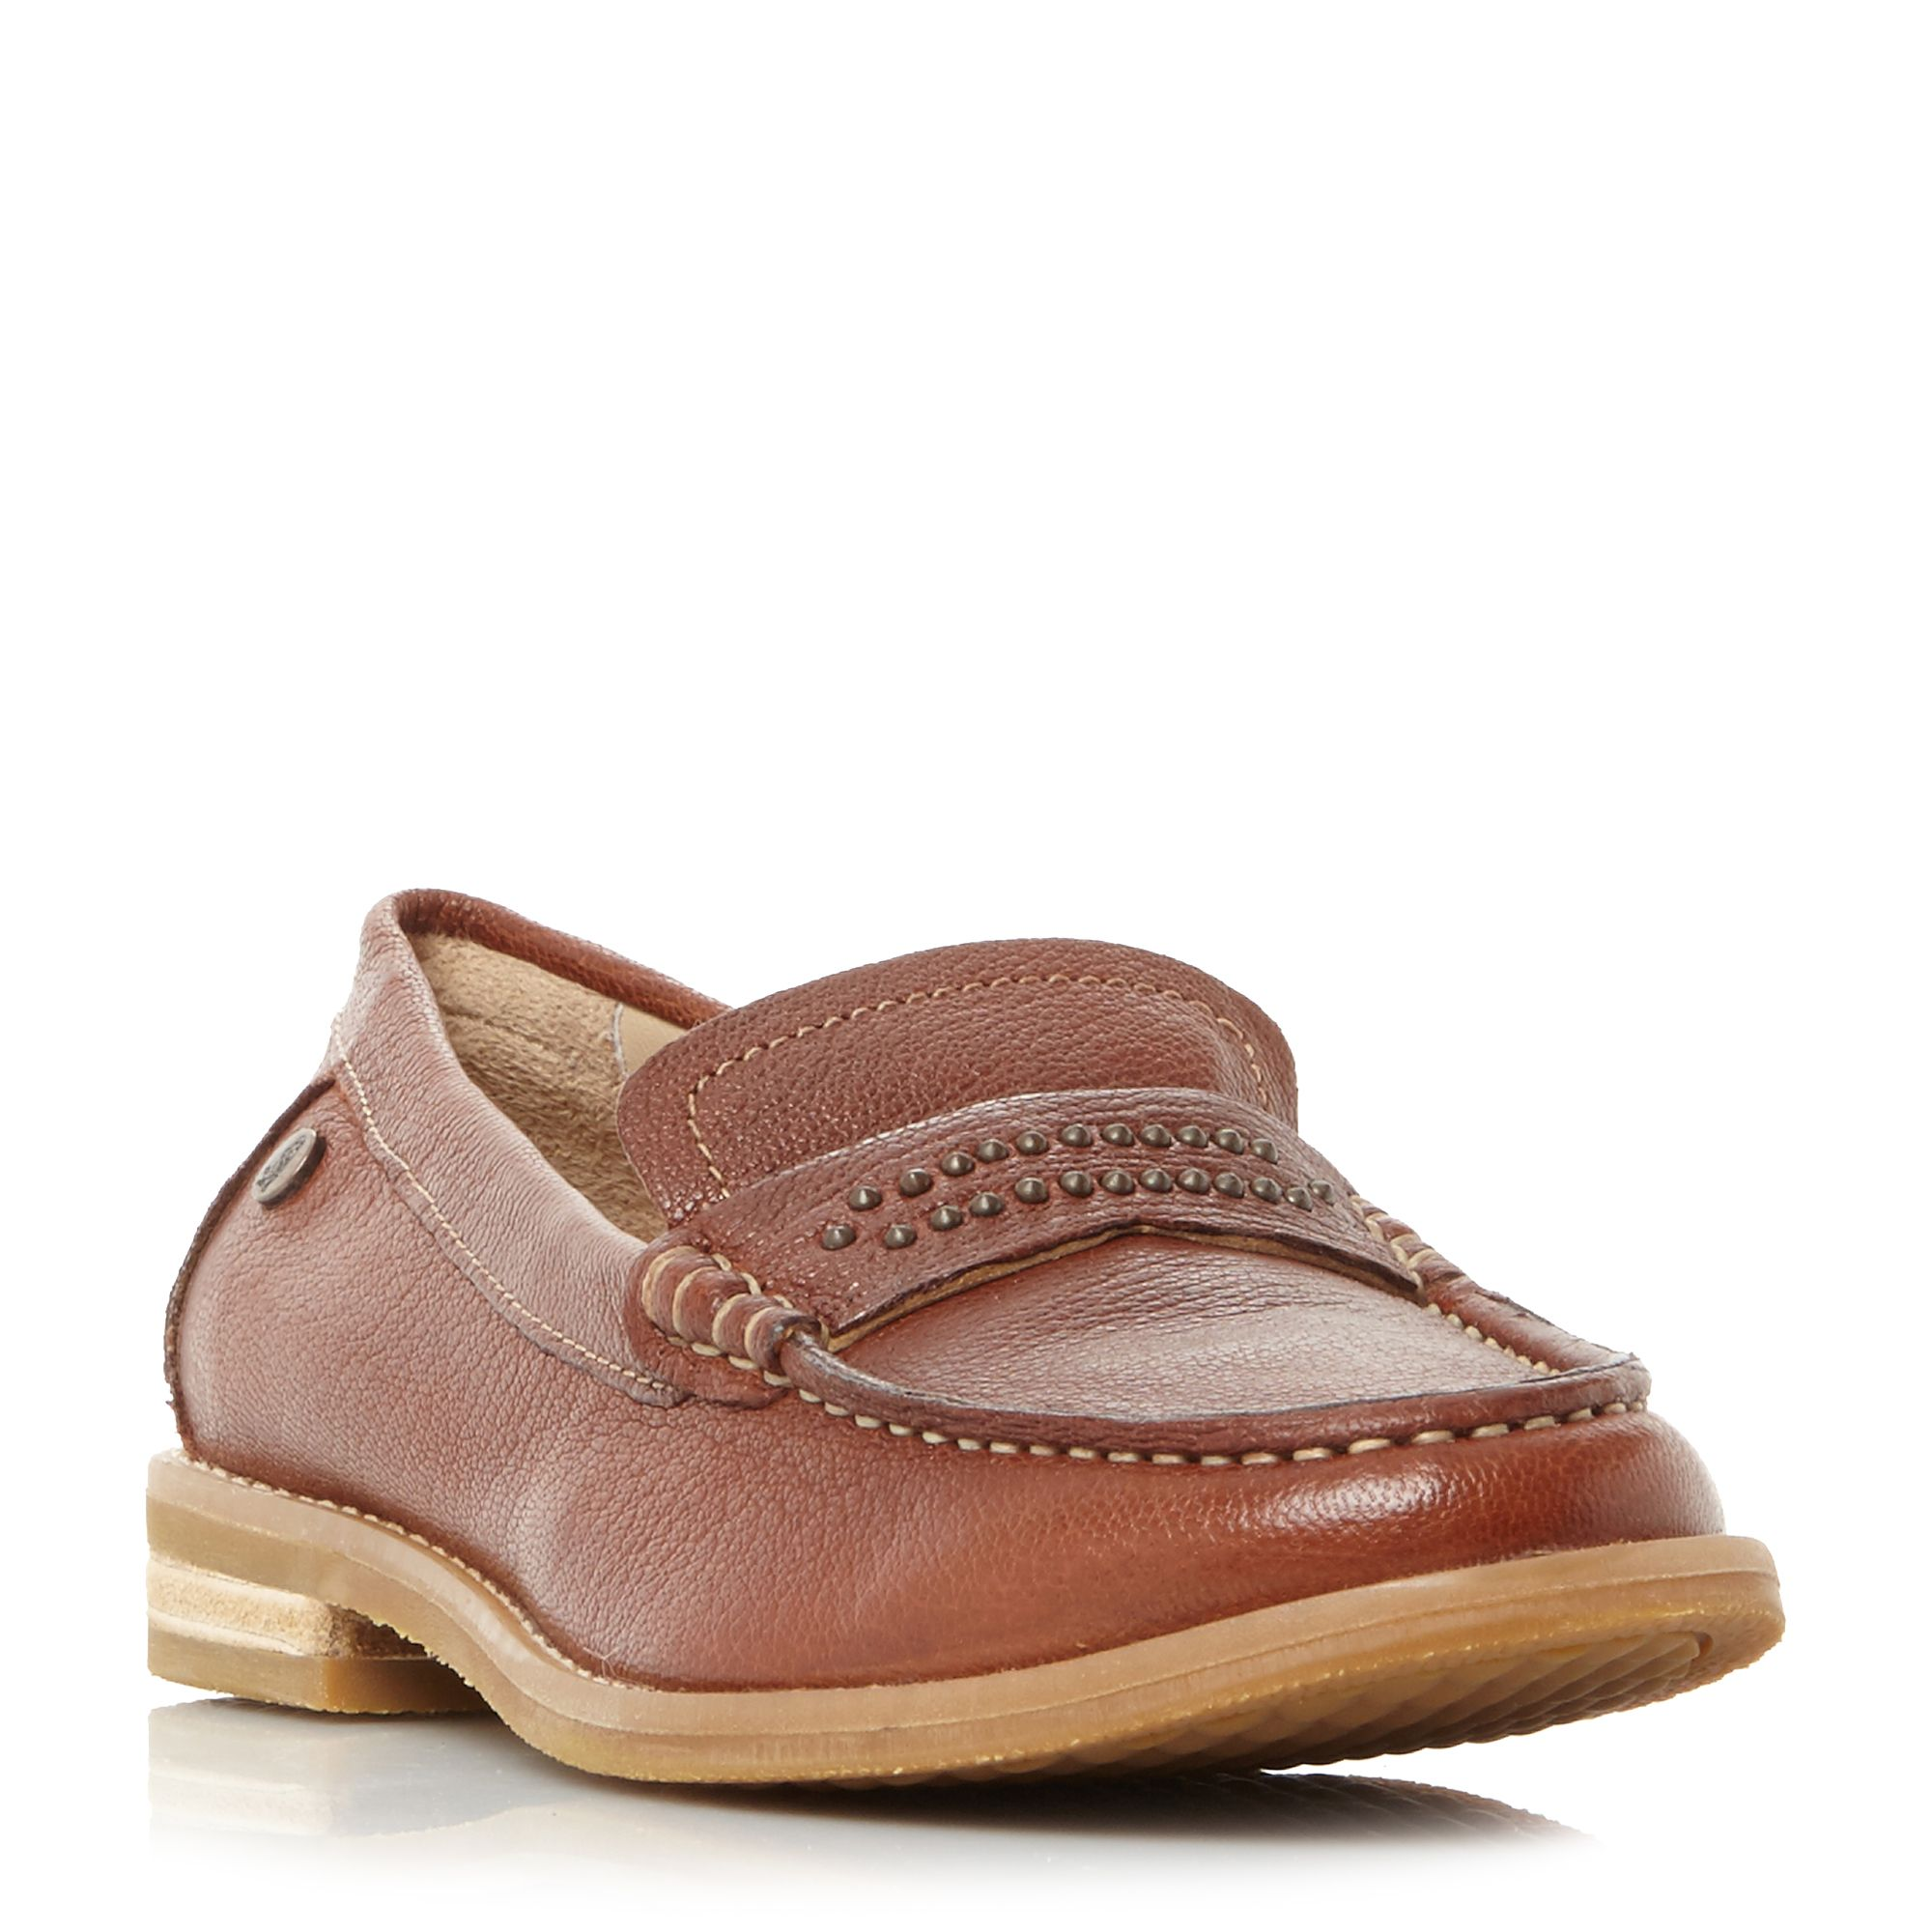 Hush Puppies Aubree Chardon Loafer Shoes, Tan